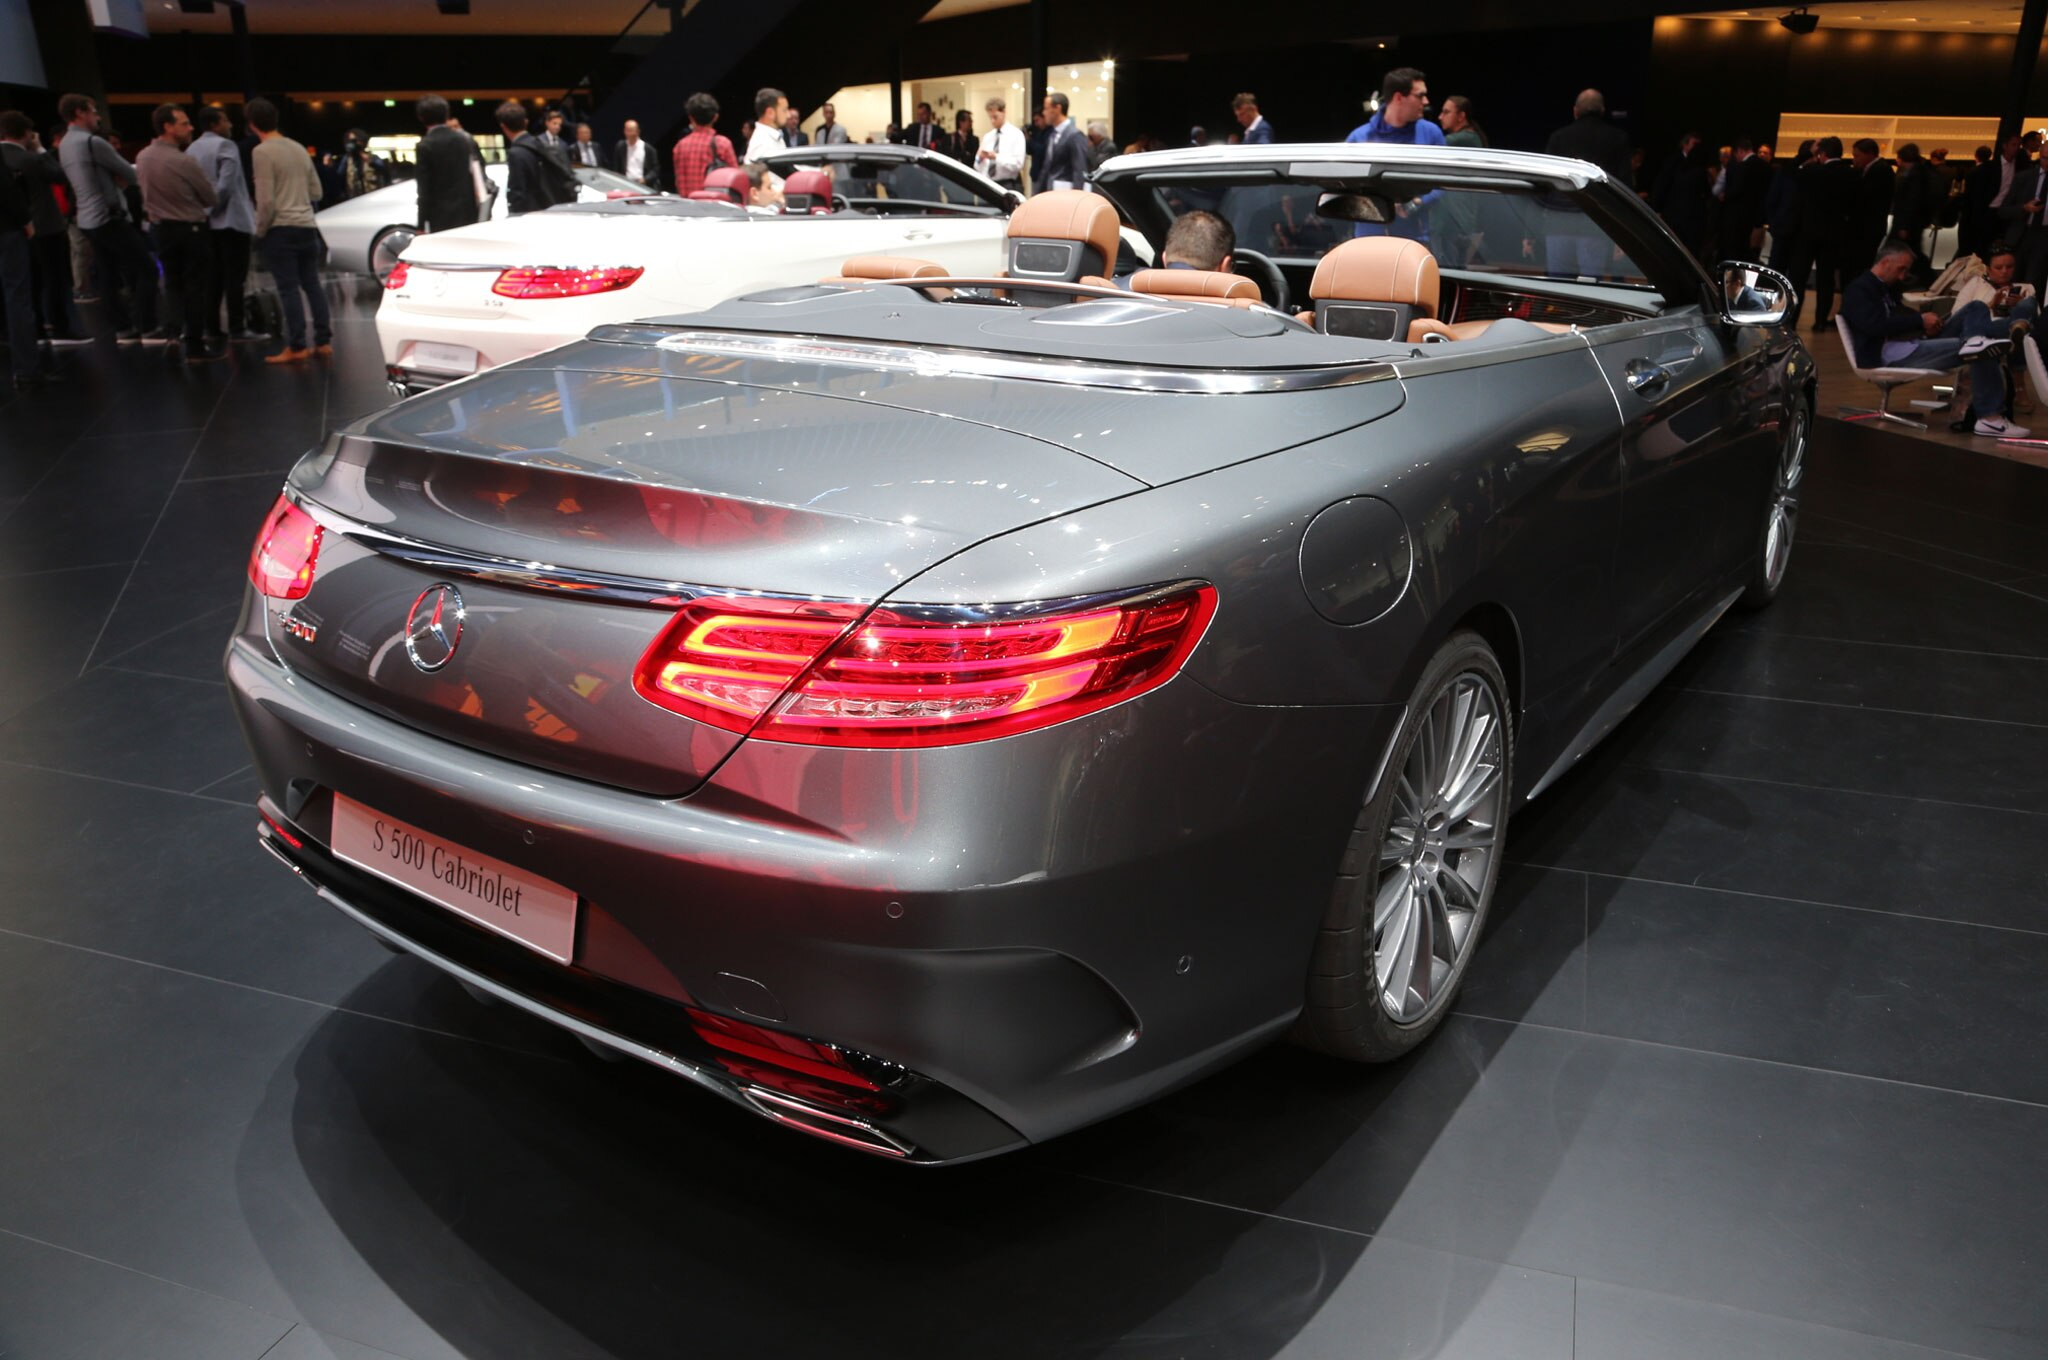 2017 Mercedes-Benz S-Class Cabriolet Opens its Roof Ahead of ...